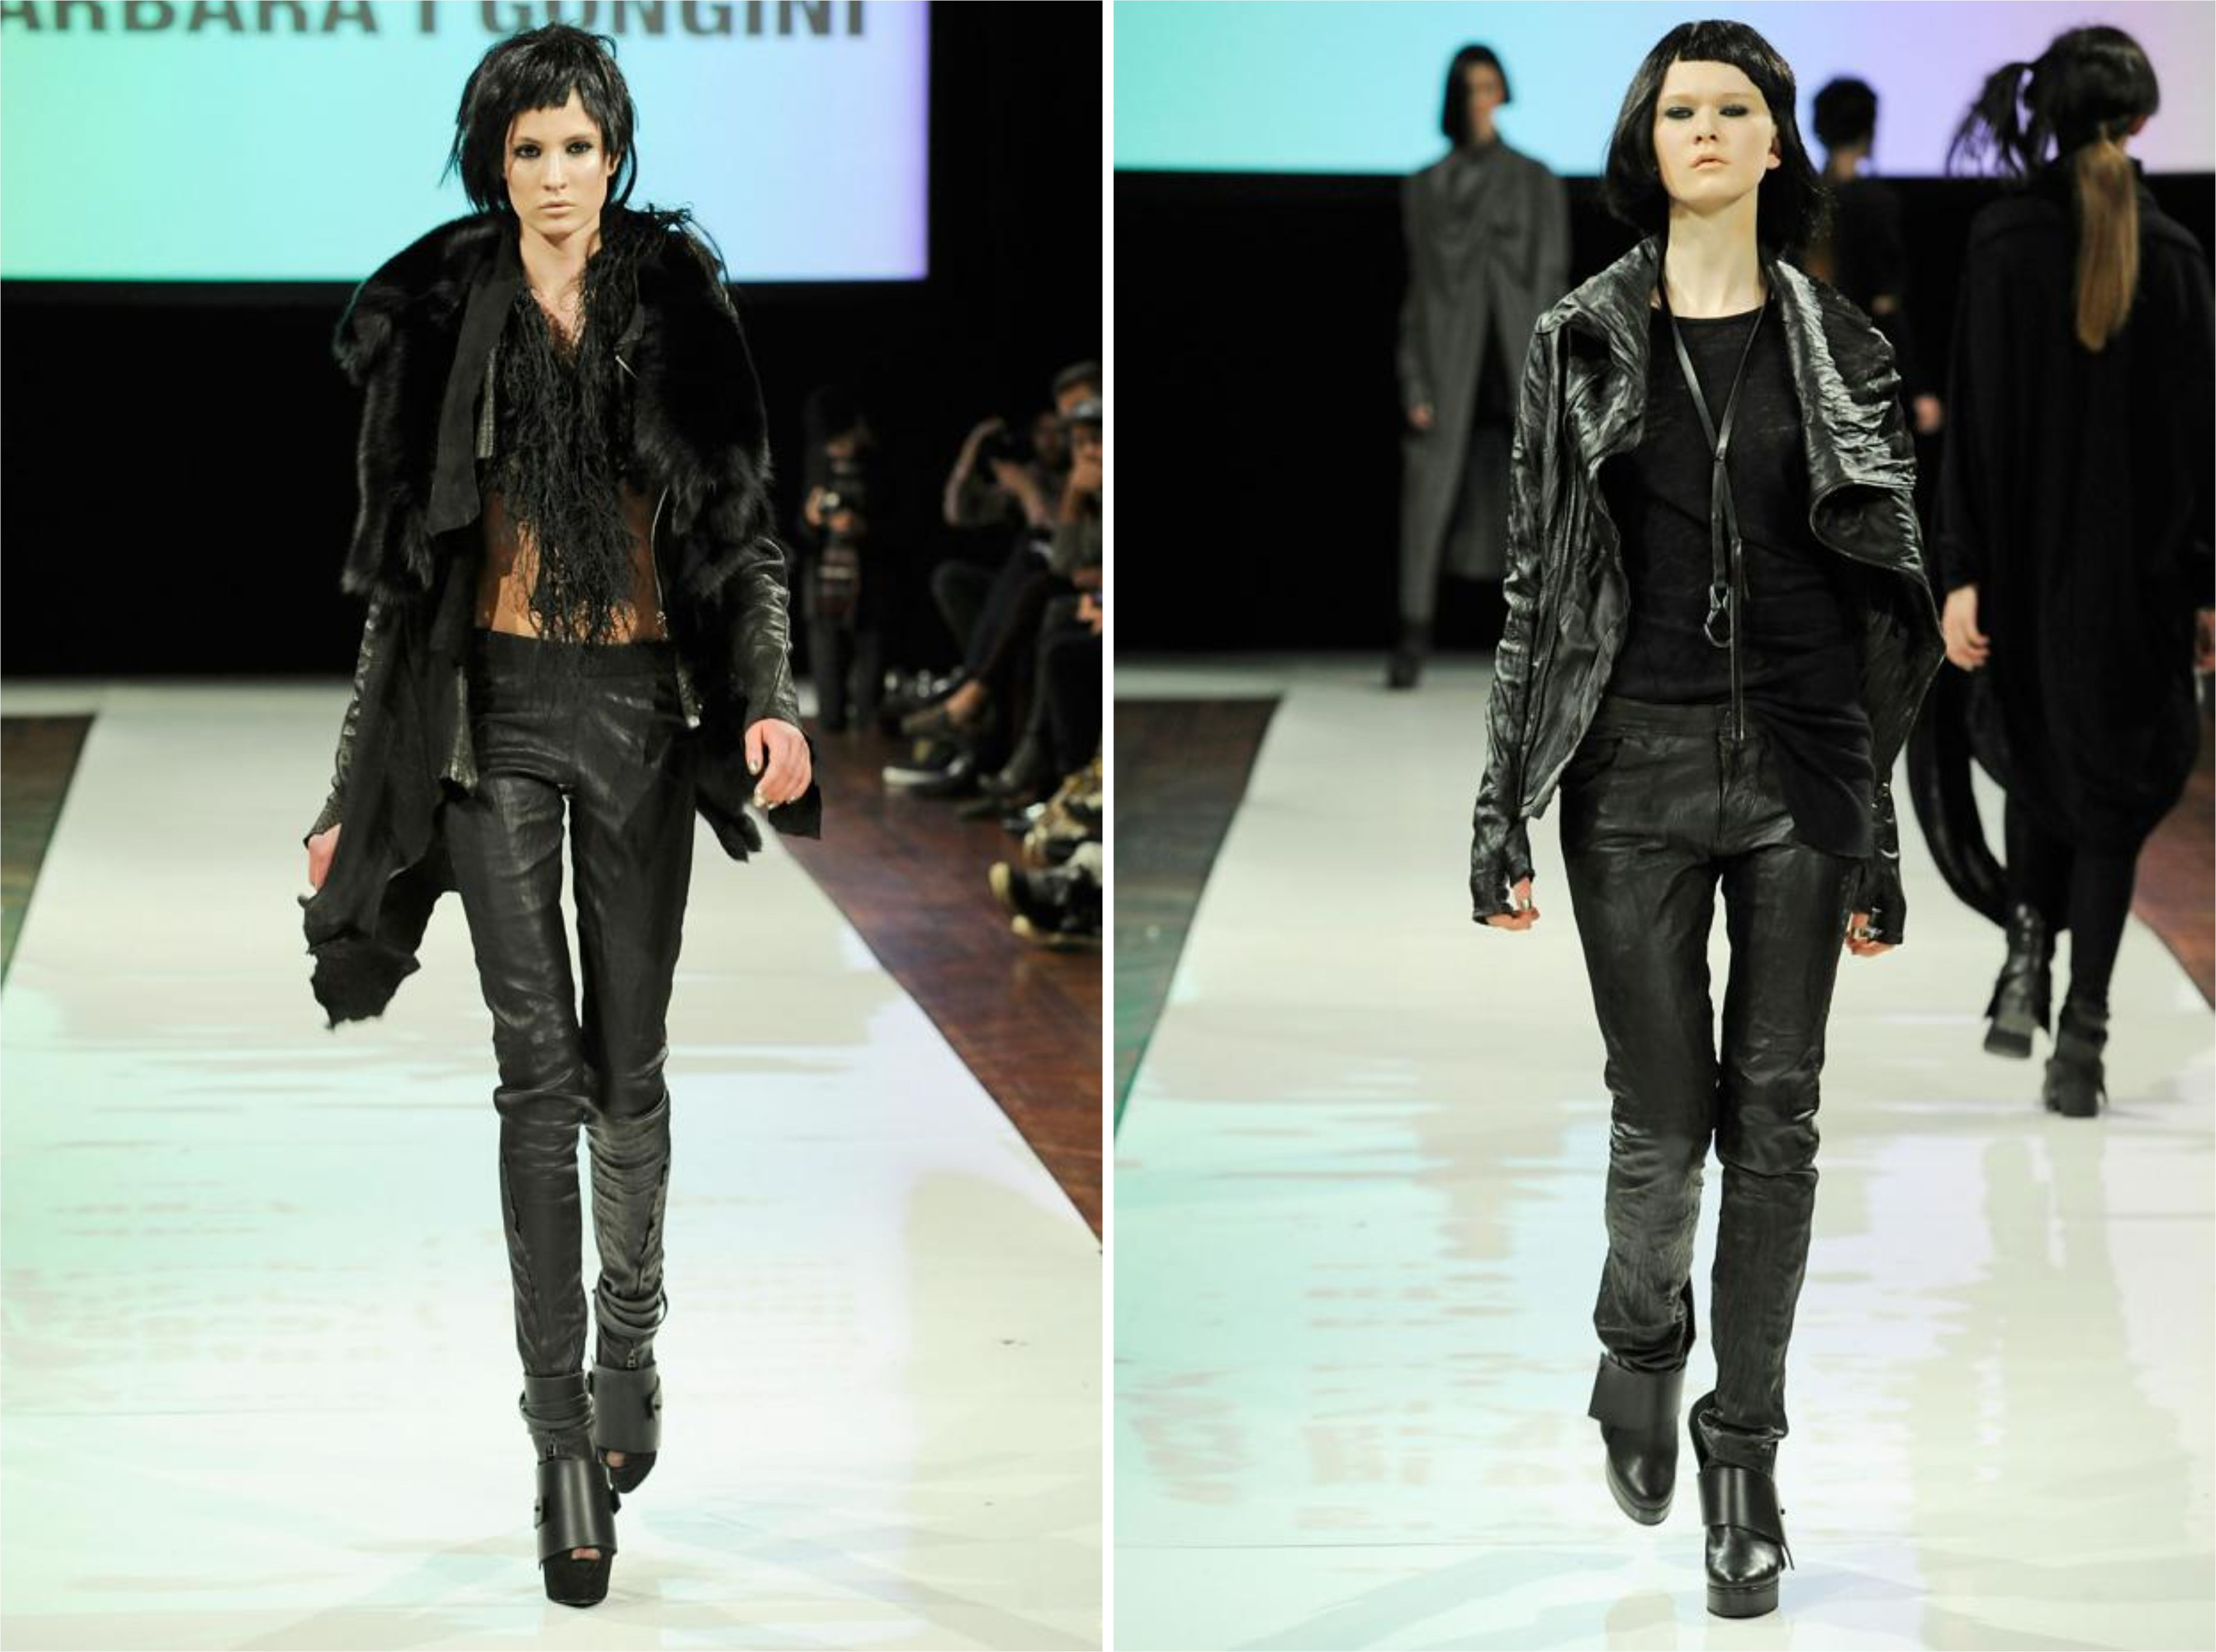 barbara-i-gongini-autumn-fall-winter-2013